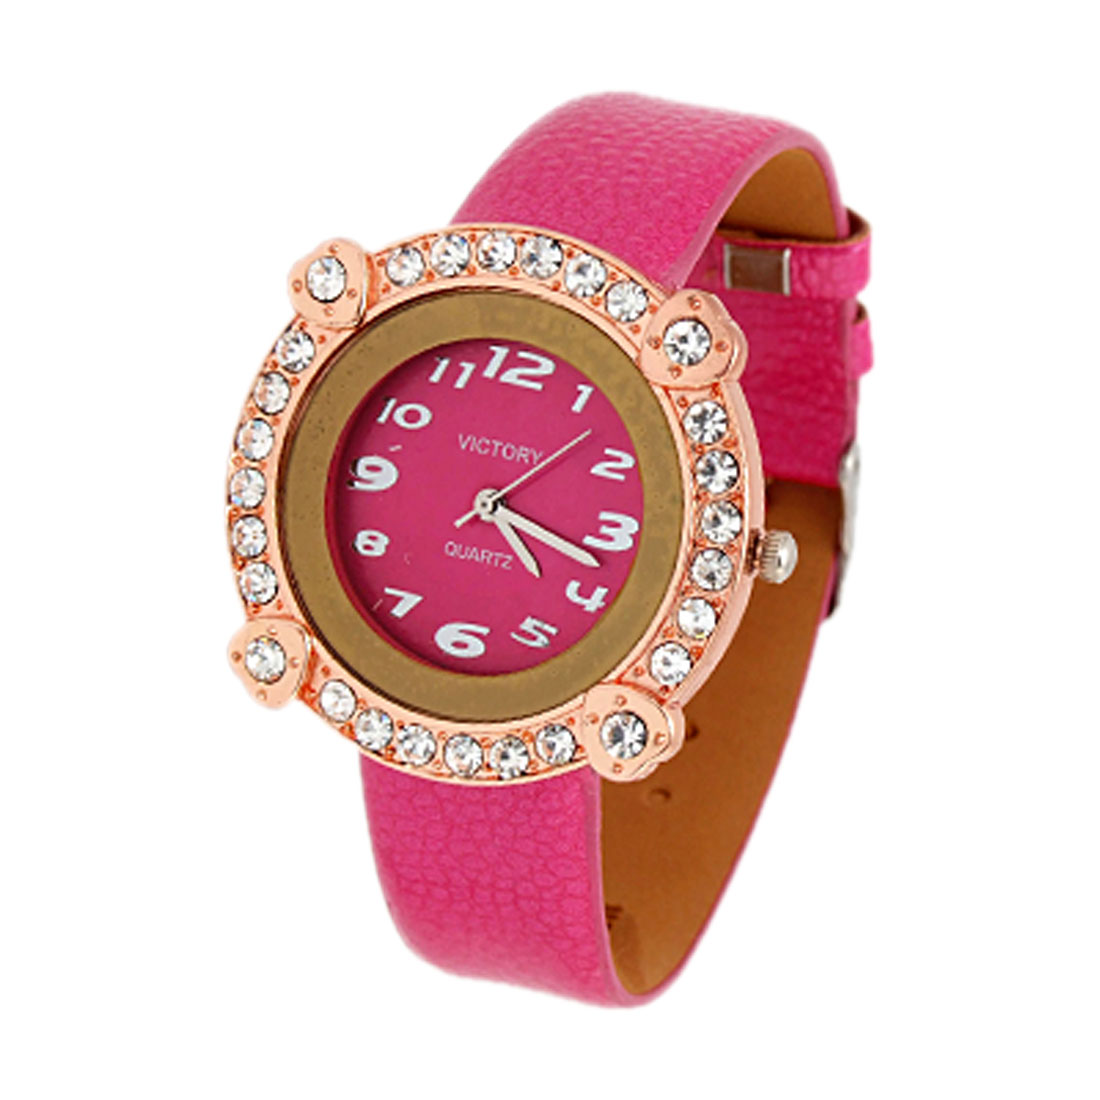 Exquisite Jewelry Victory Rose Color Leather Lady Quartz Wristwatches